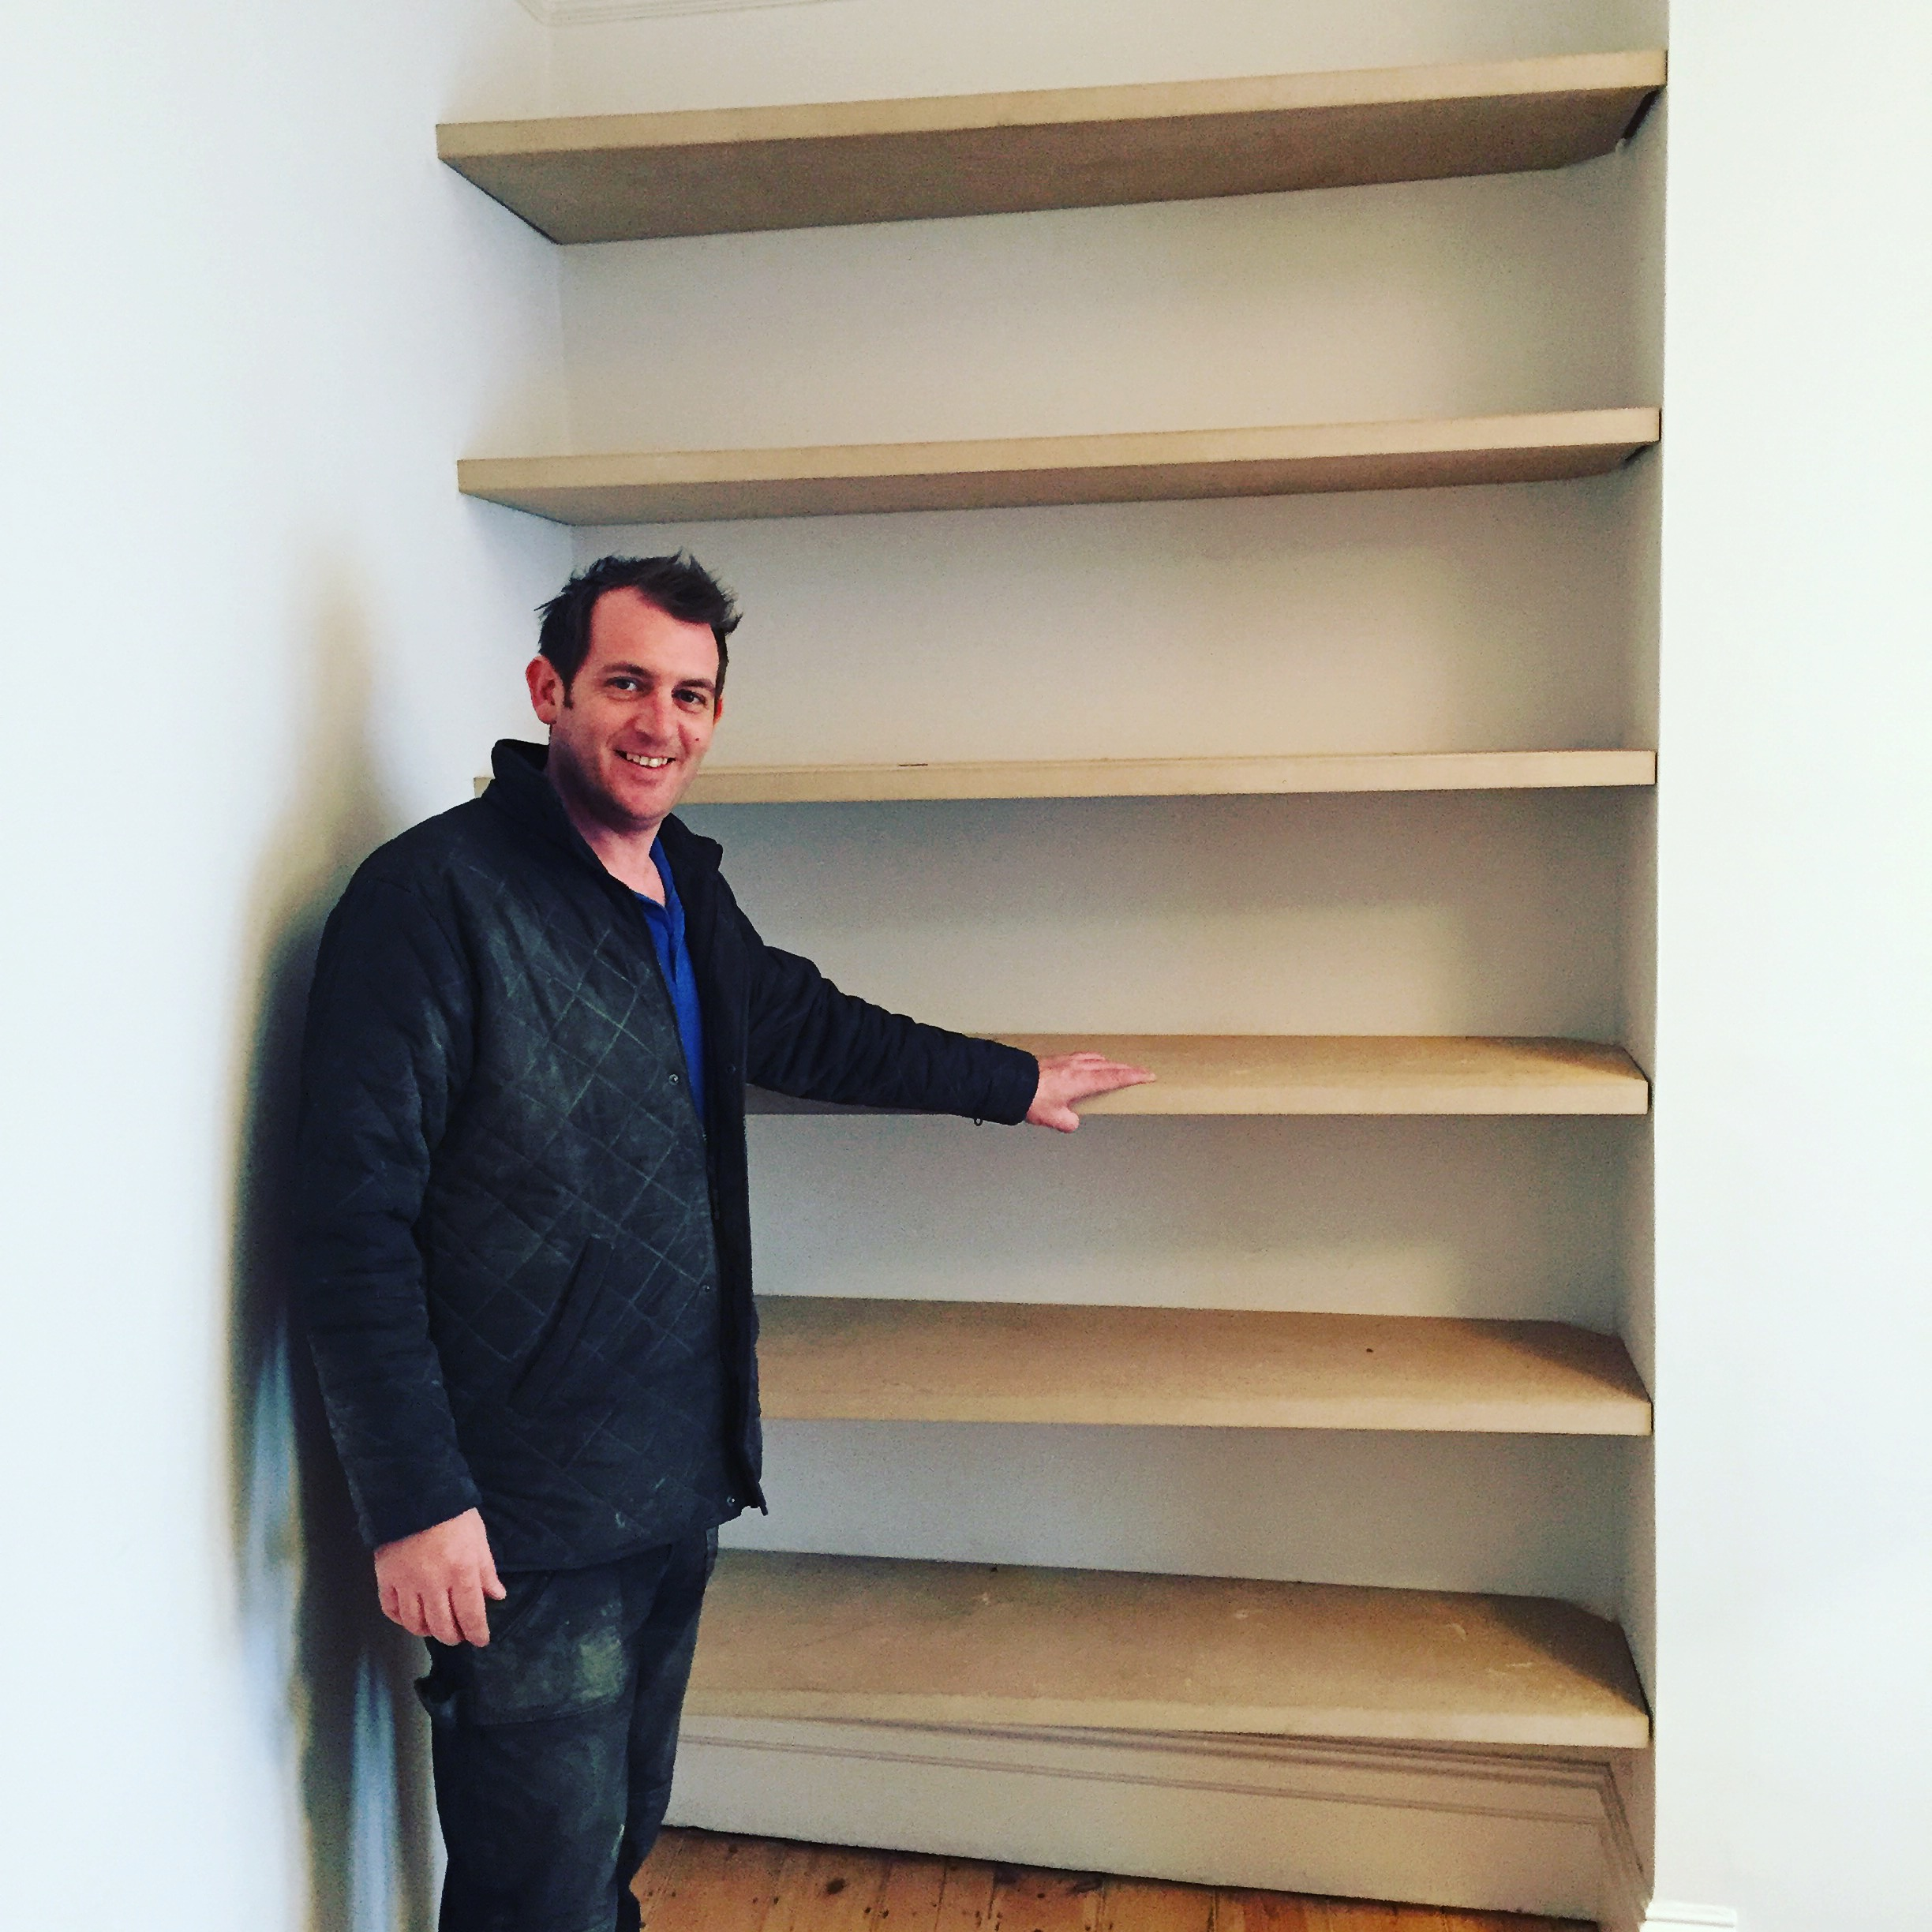 Made to measure mdf alcove shelves.